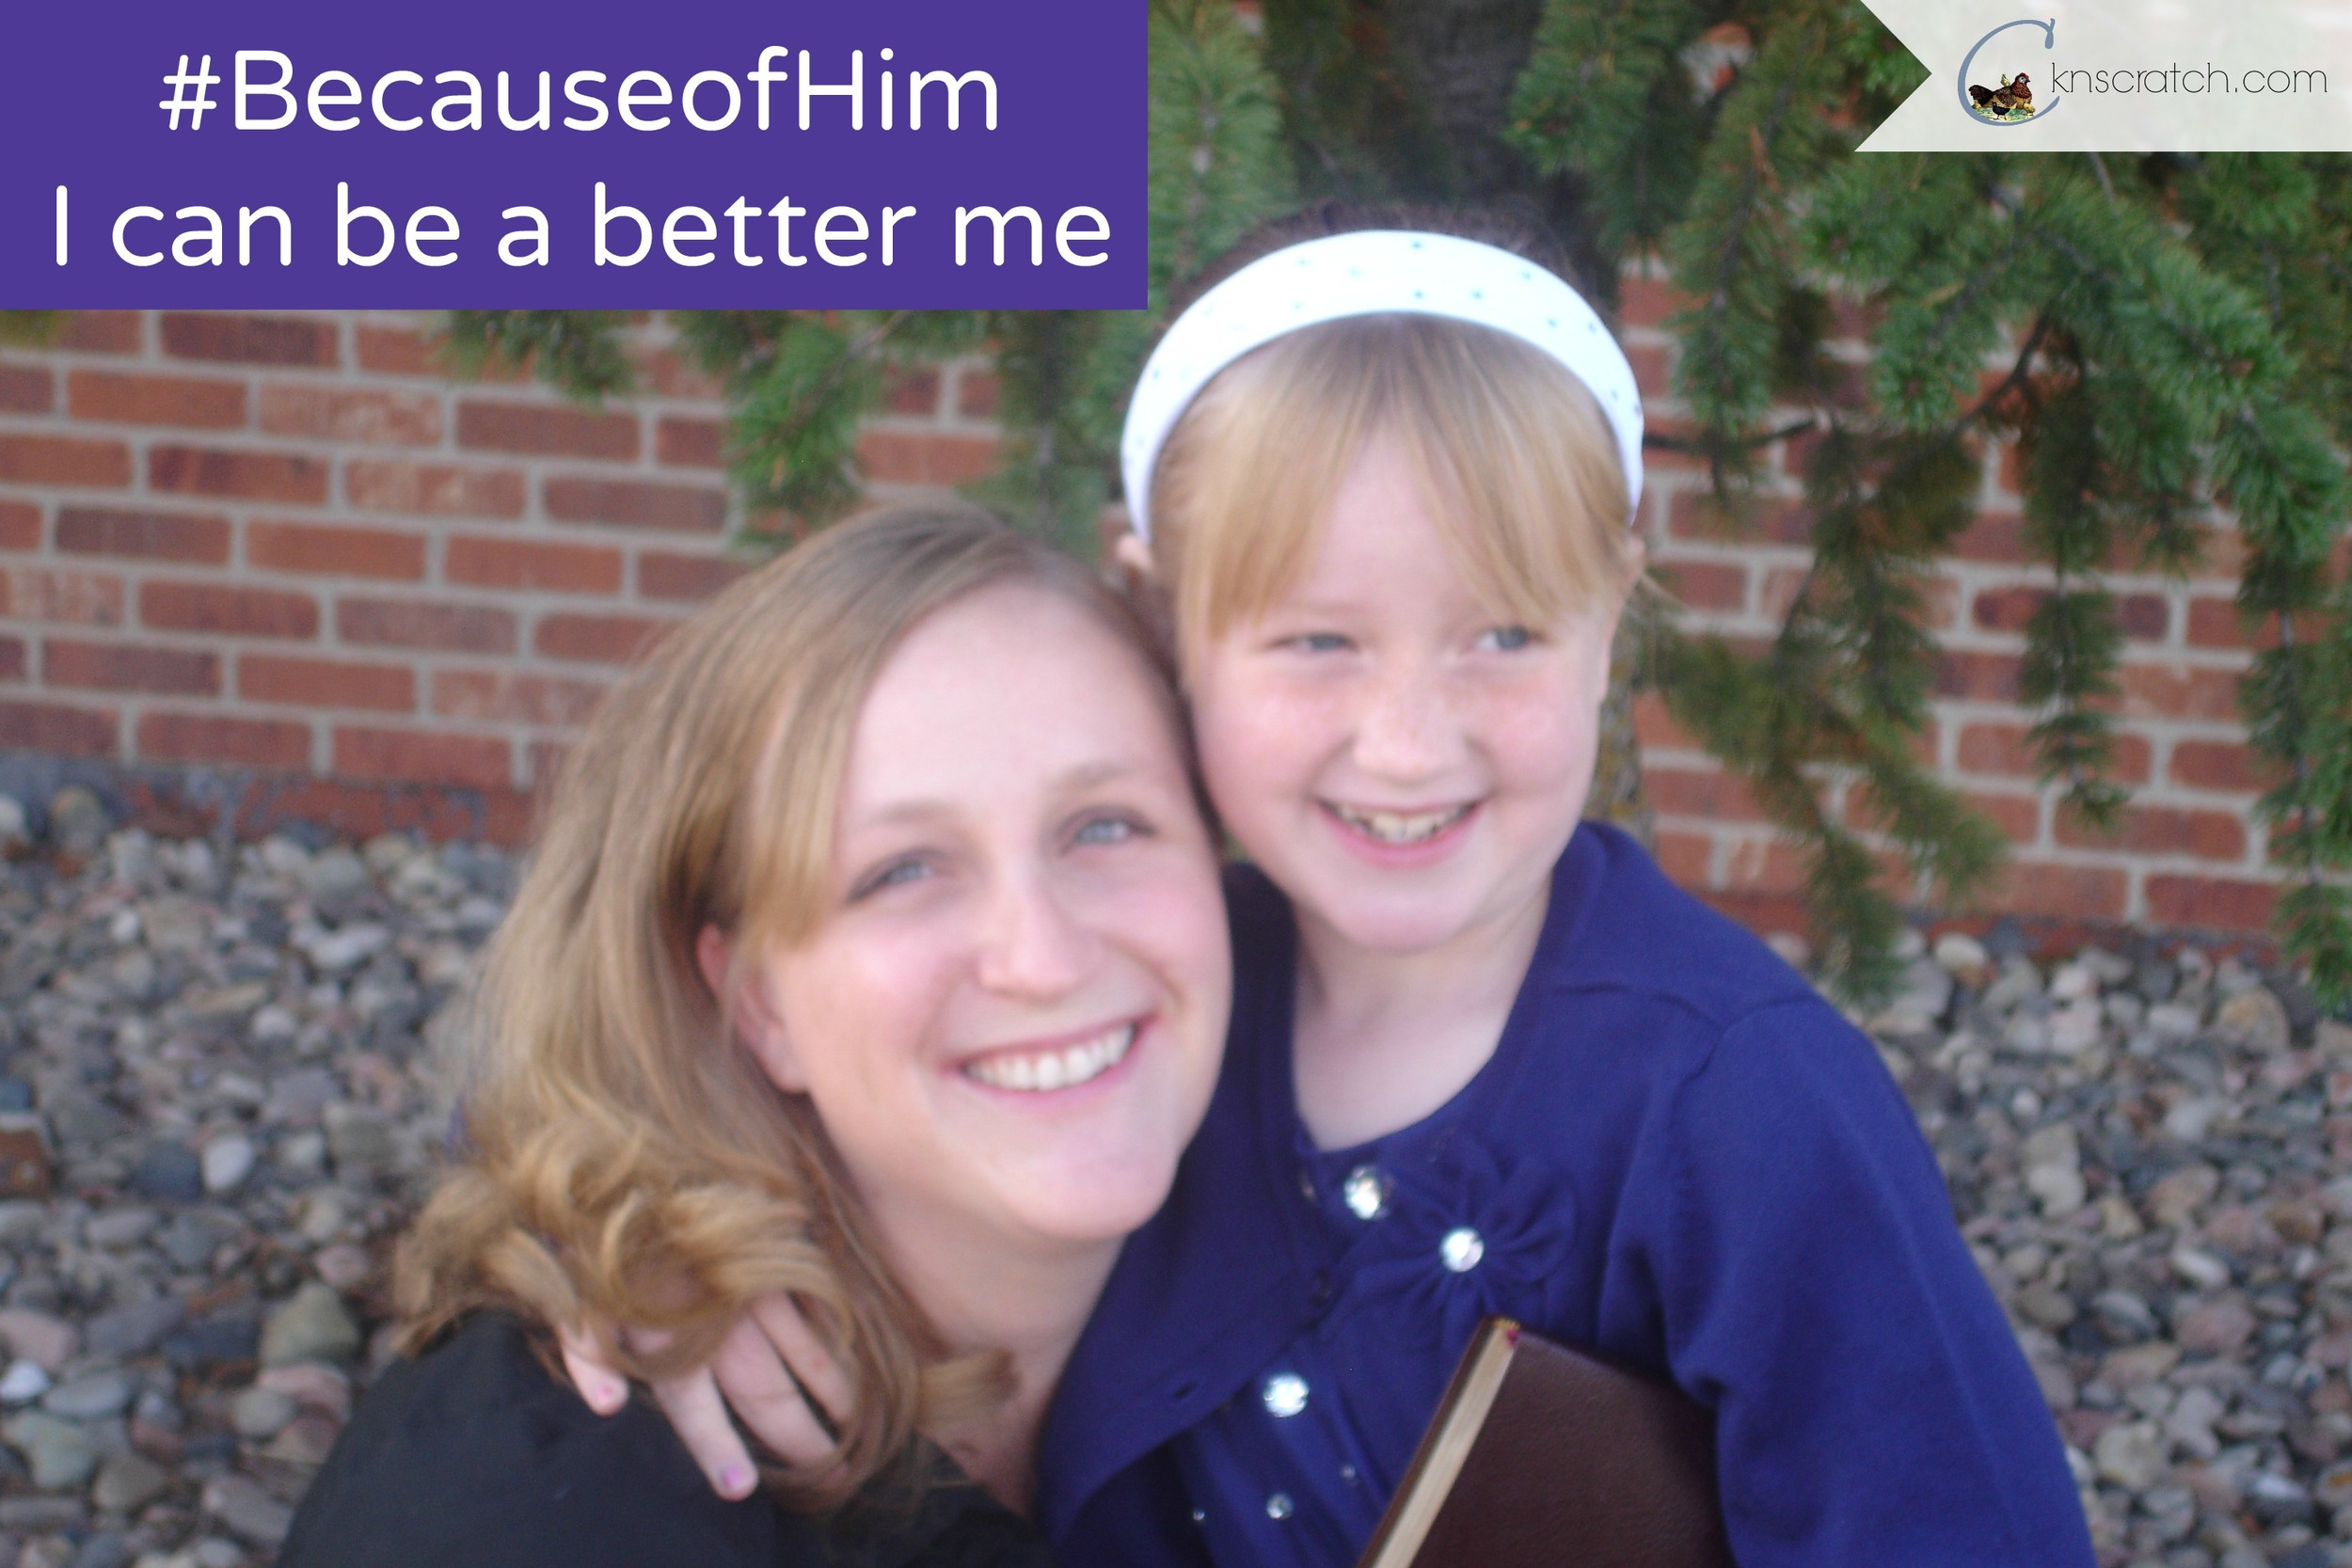 #BecauseofHim I can be a better me